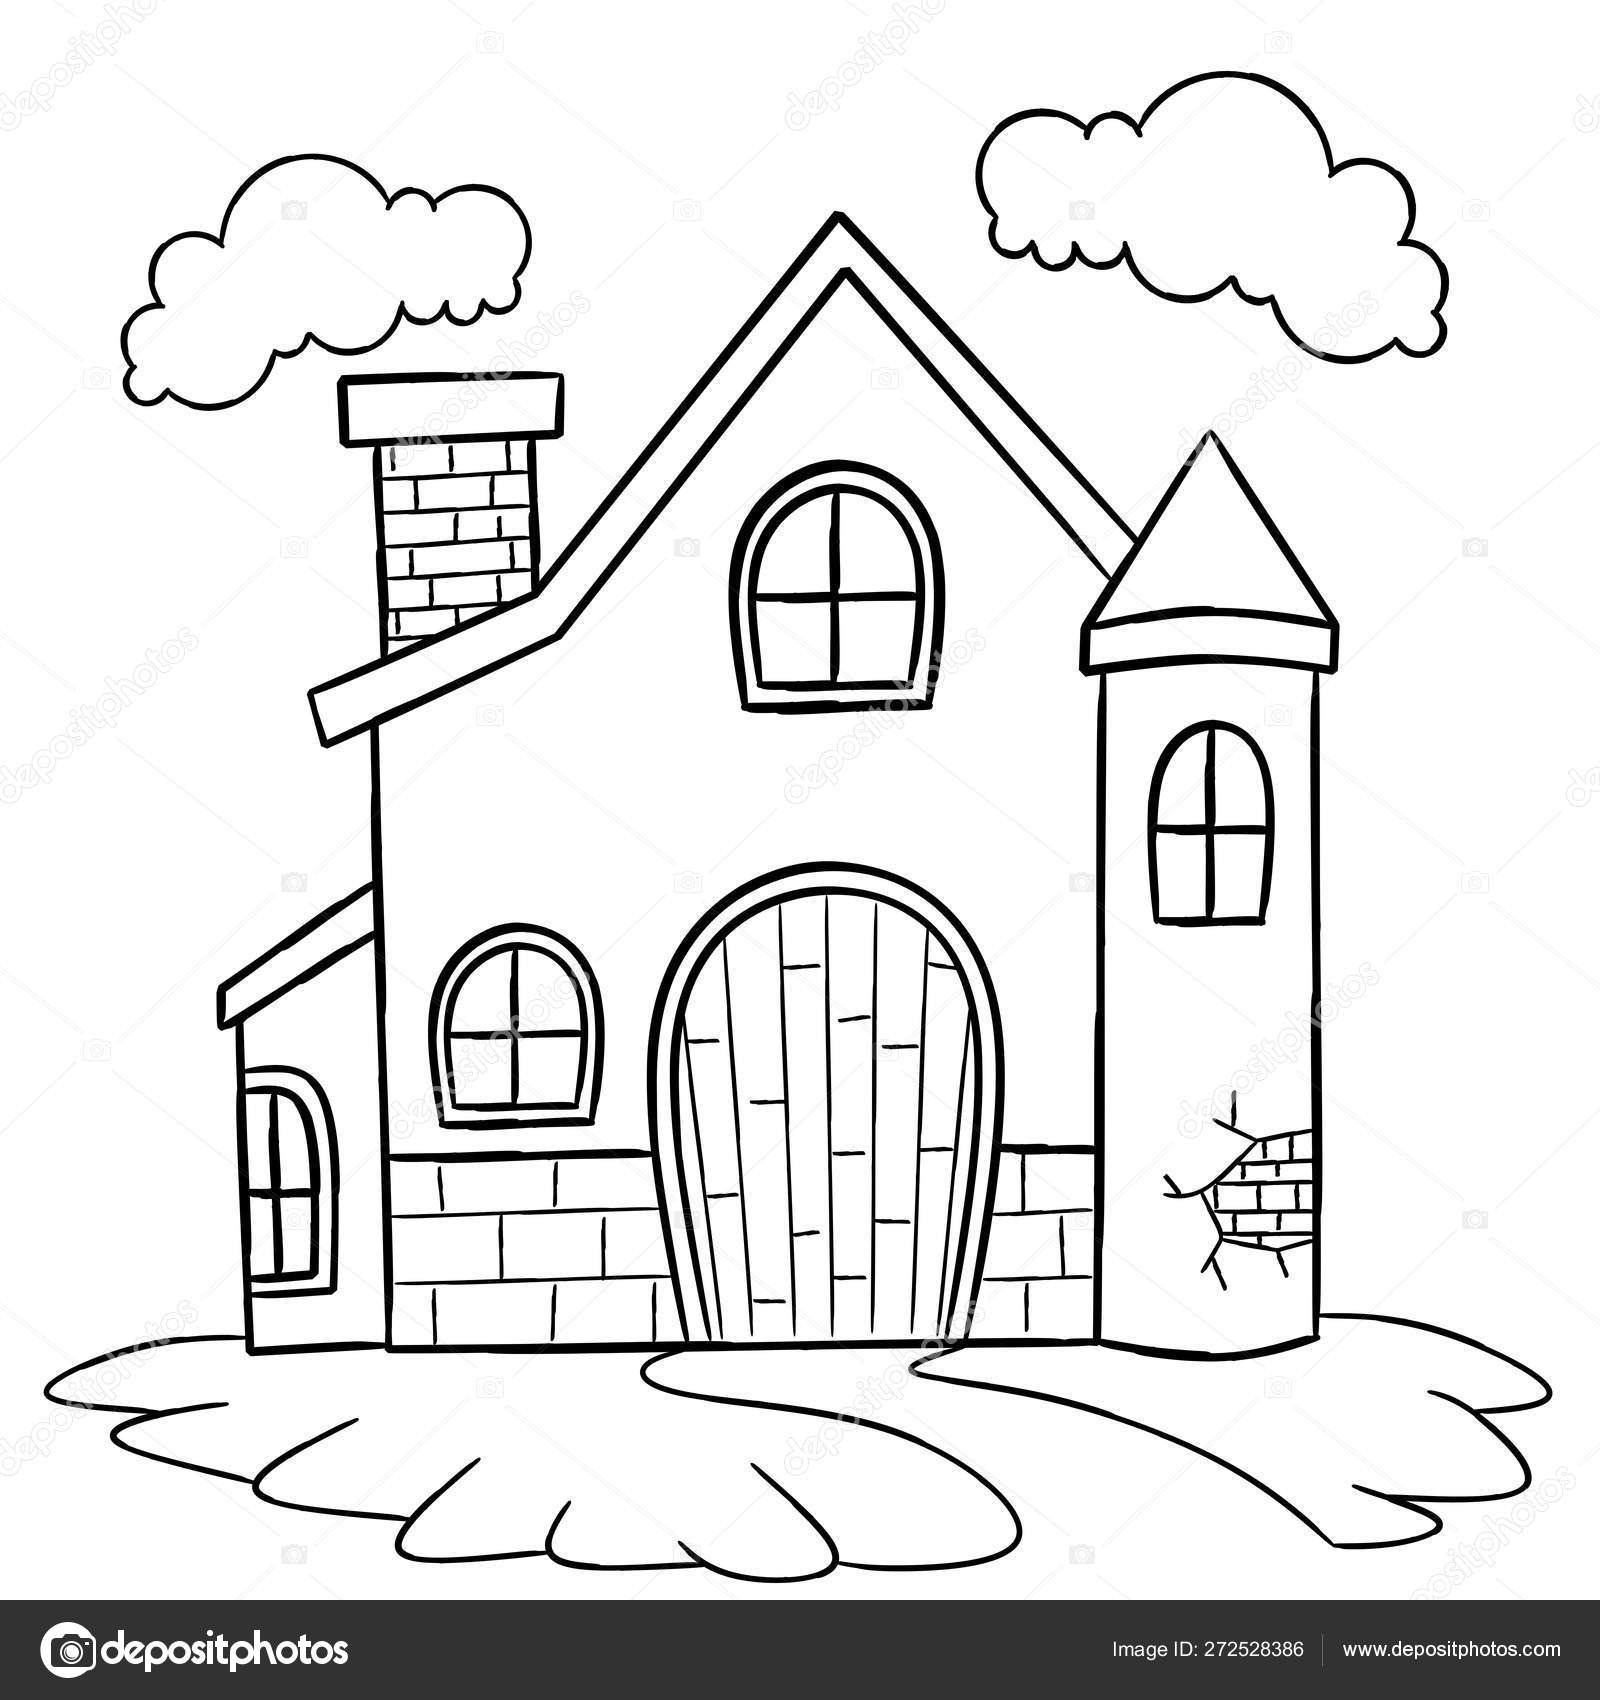 House Coloring Page Children — Stock Vector © dennyranch ...